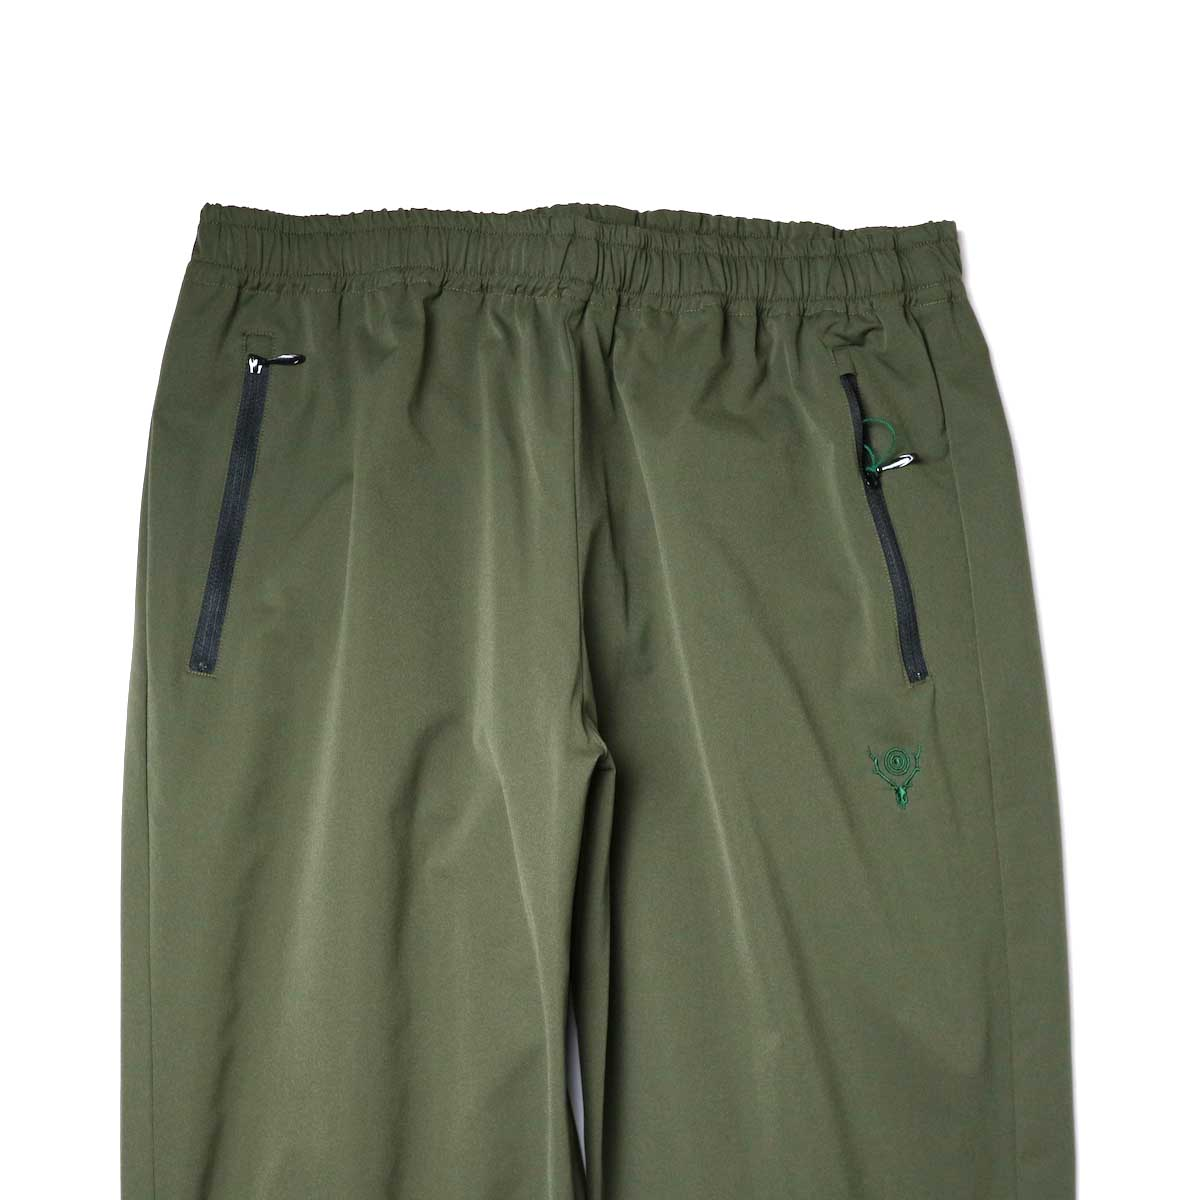 South2 West8 / Boulder Pant -Poly Stretch Twill (Green)ウエスト